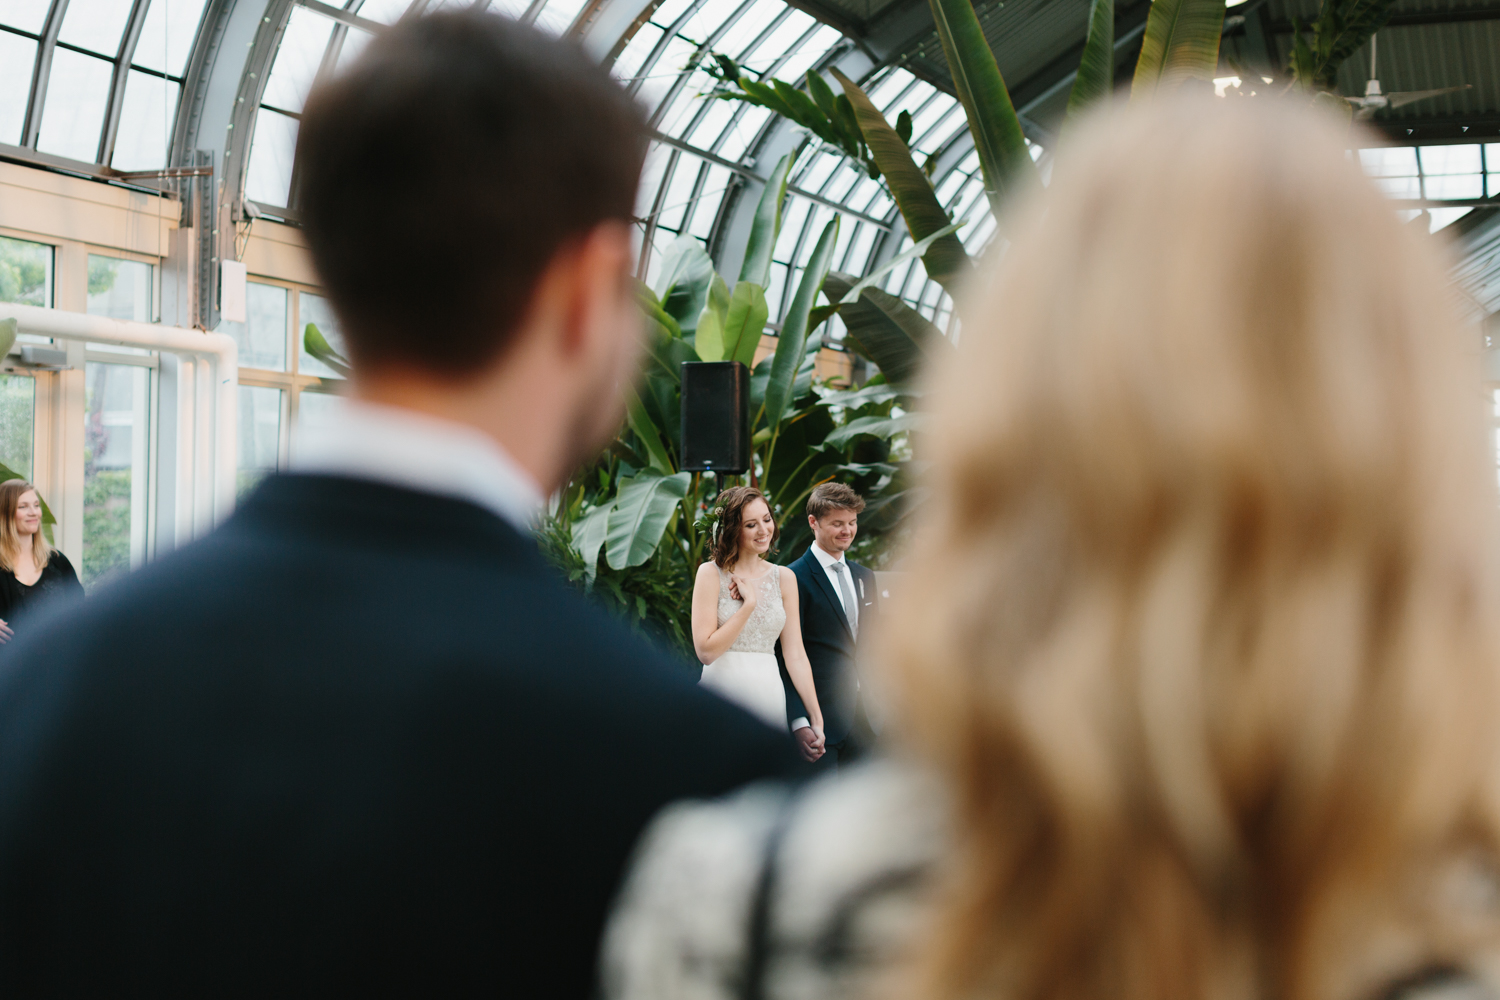 Chicago Garfield Park Conservatory Wedding by Northern Michigan Photographer Mae Stier-080.jpg